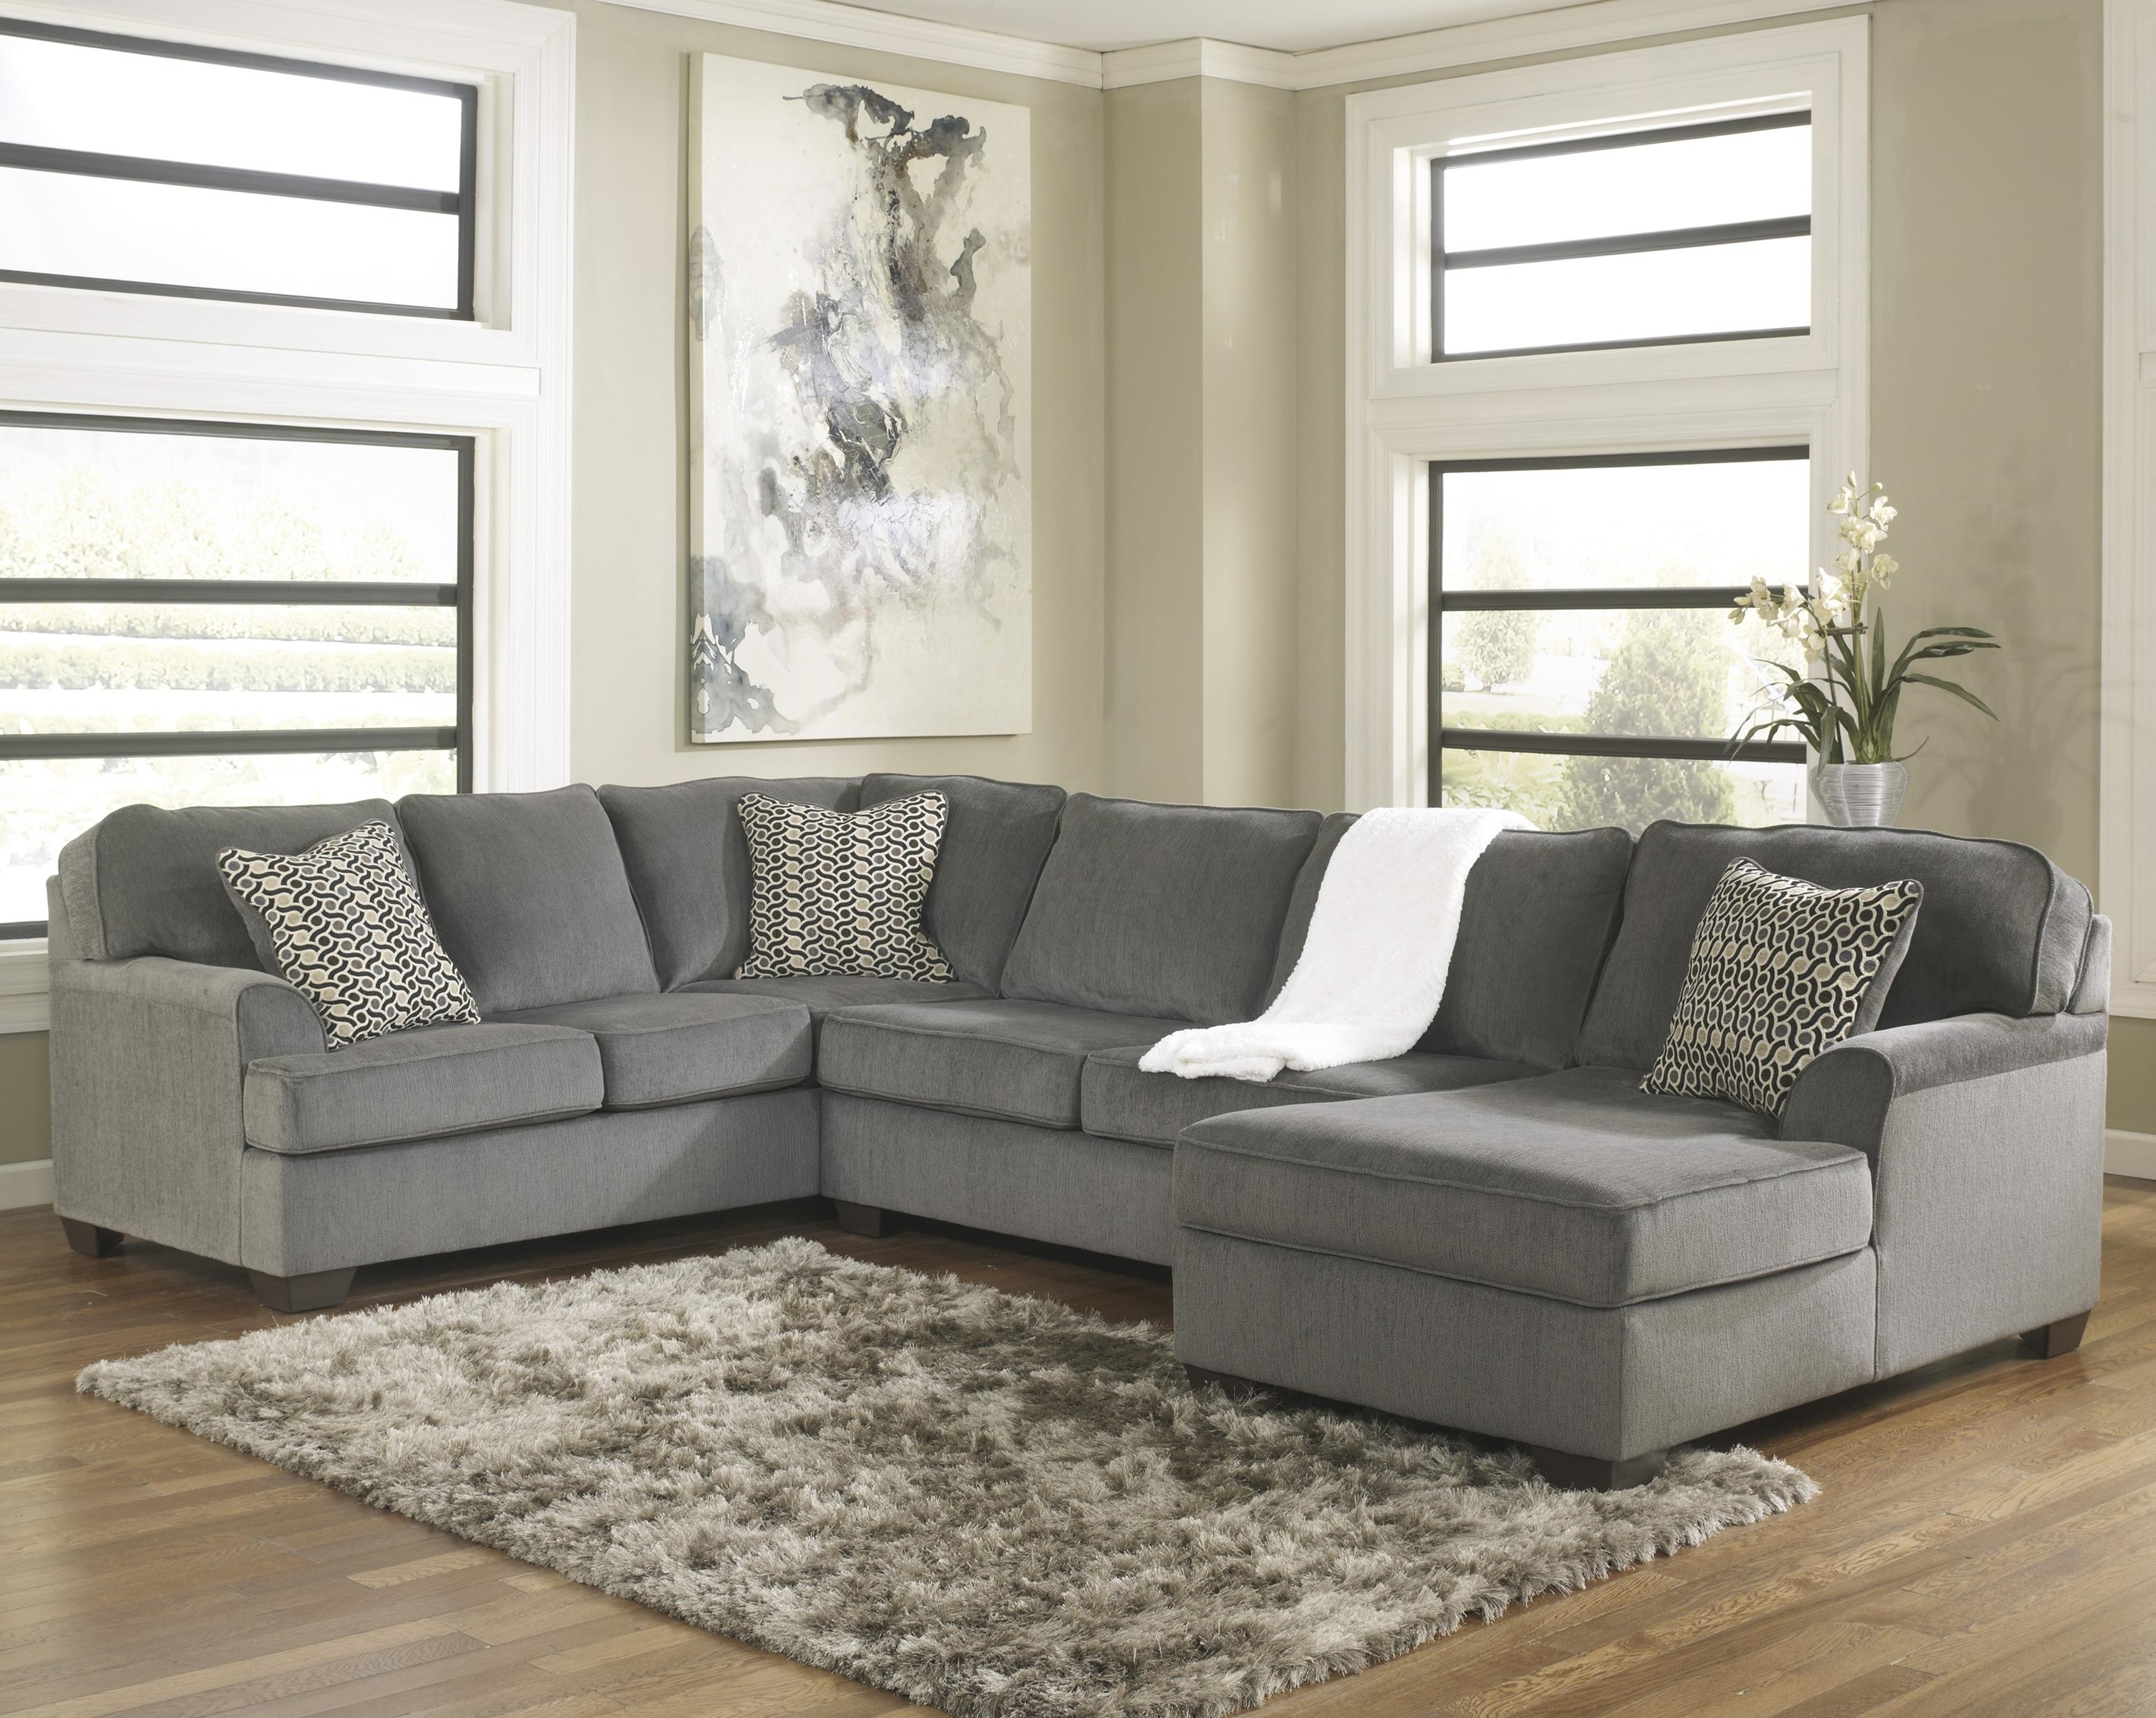 Ashley Furniture Loric – Smoke Contemporary 3 Piece Sectional With With Regard To Best And Newest Ashley Furniture Sofa Chaises (View 11 of 15)